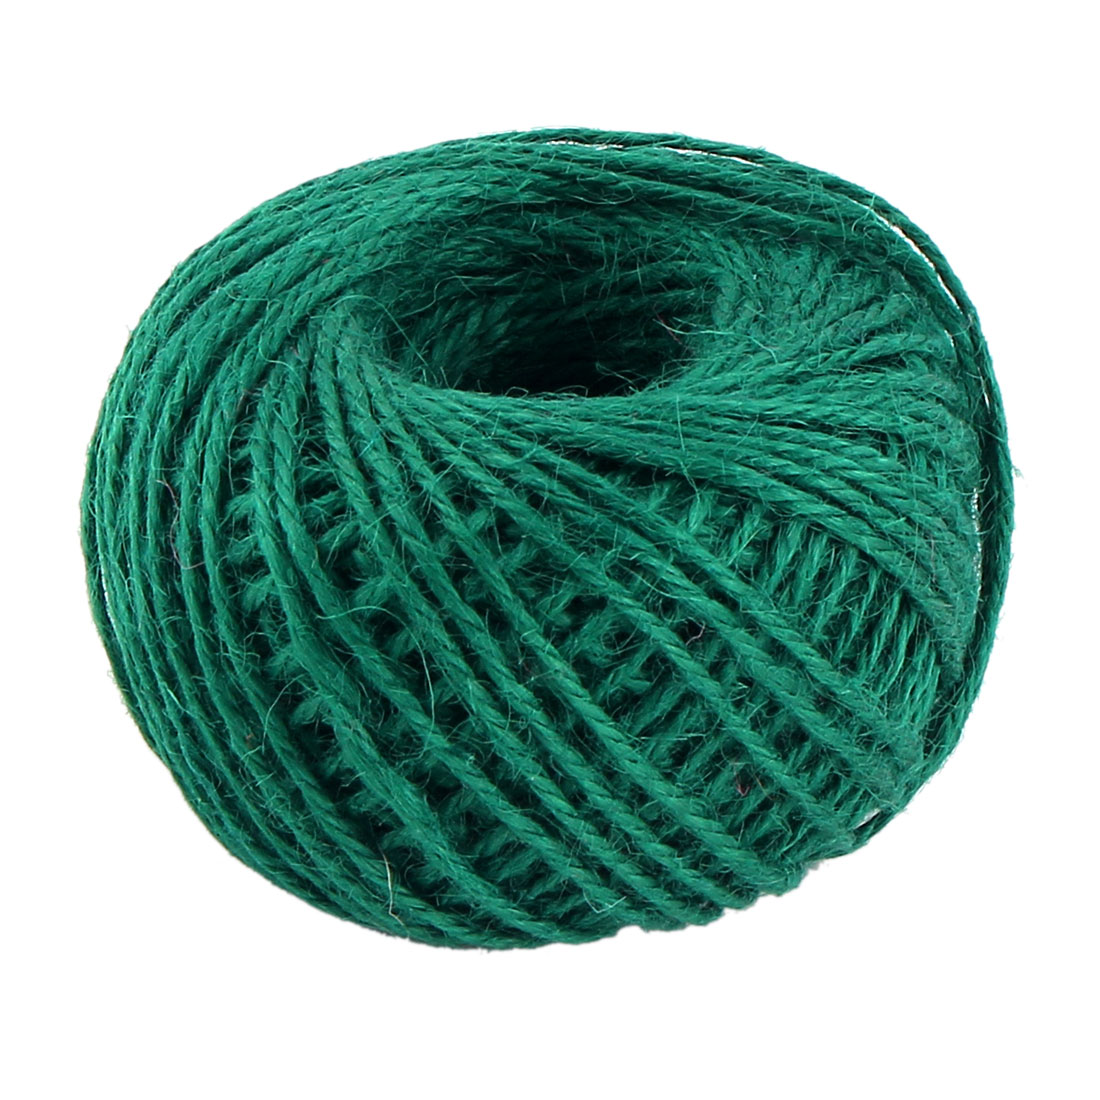 Unique Bargains Gift Tags Jute Burlap Ribbon Rope Cord Pack Roll Sea Green 2mm Dia 50m Length Yarn